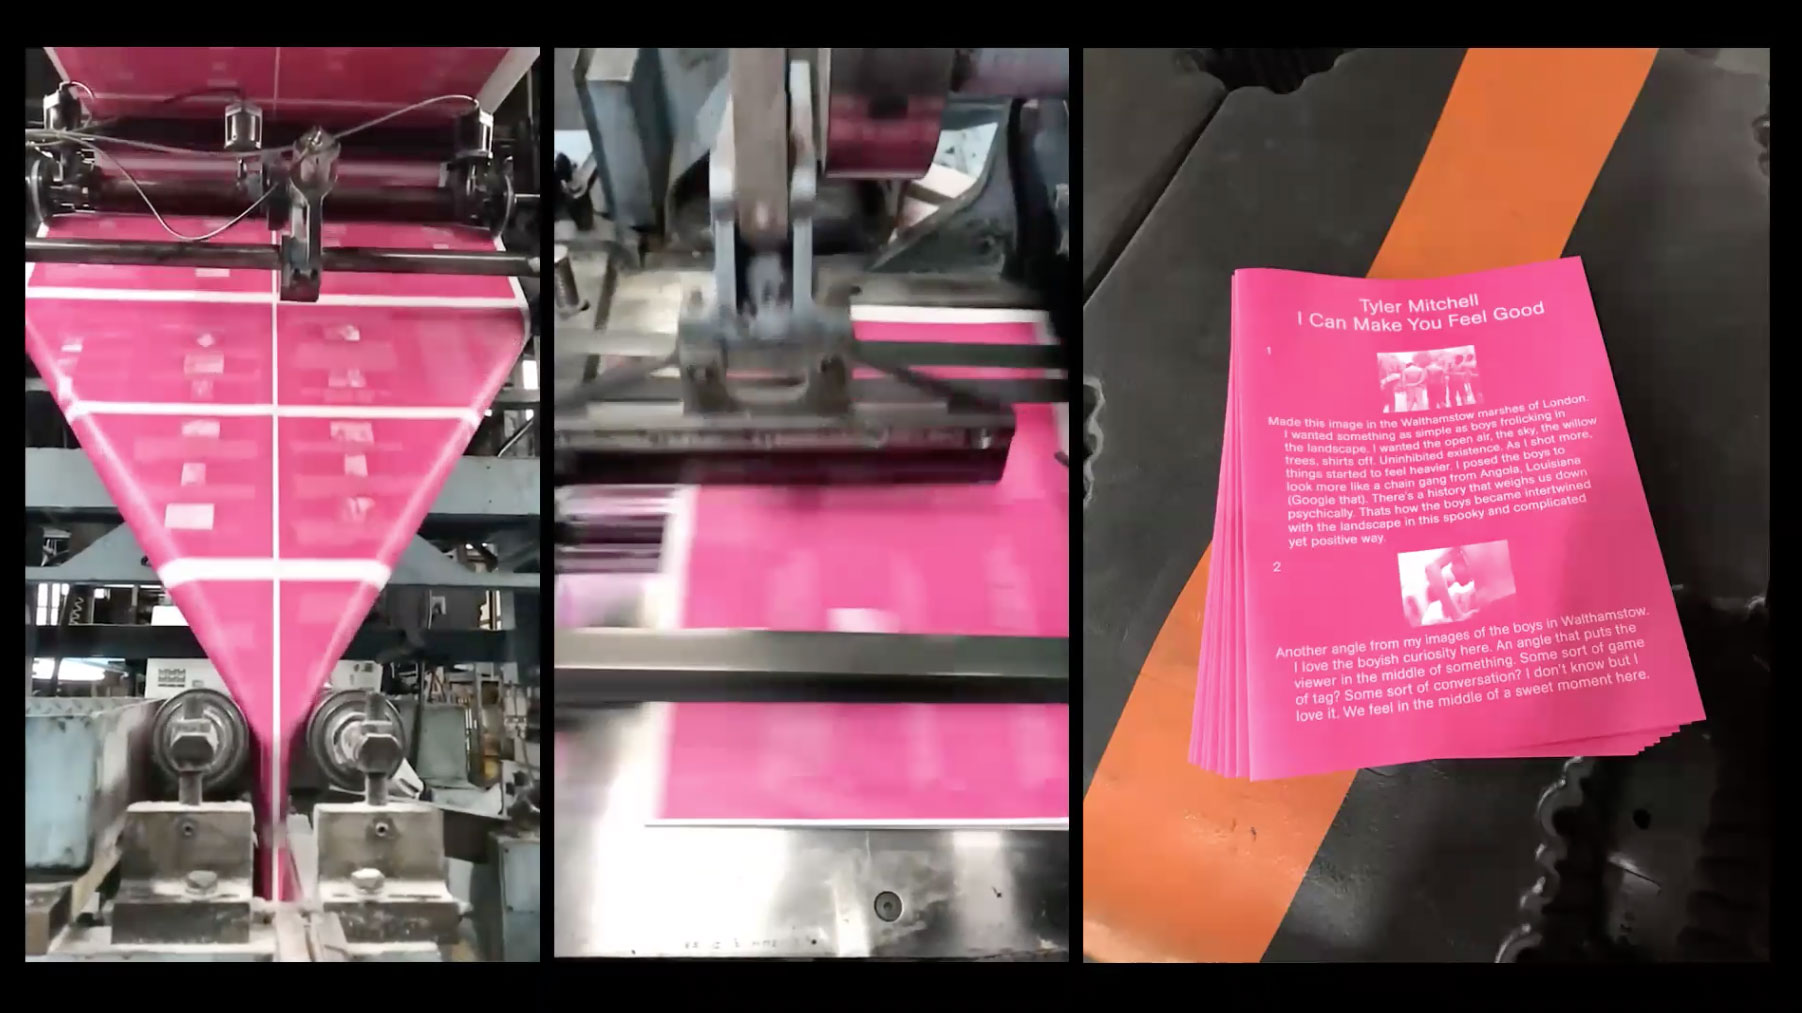 Printing press with pink posters